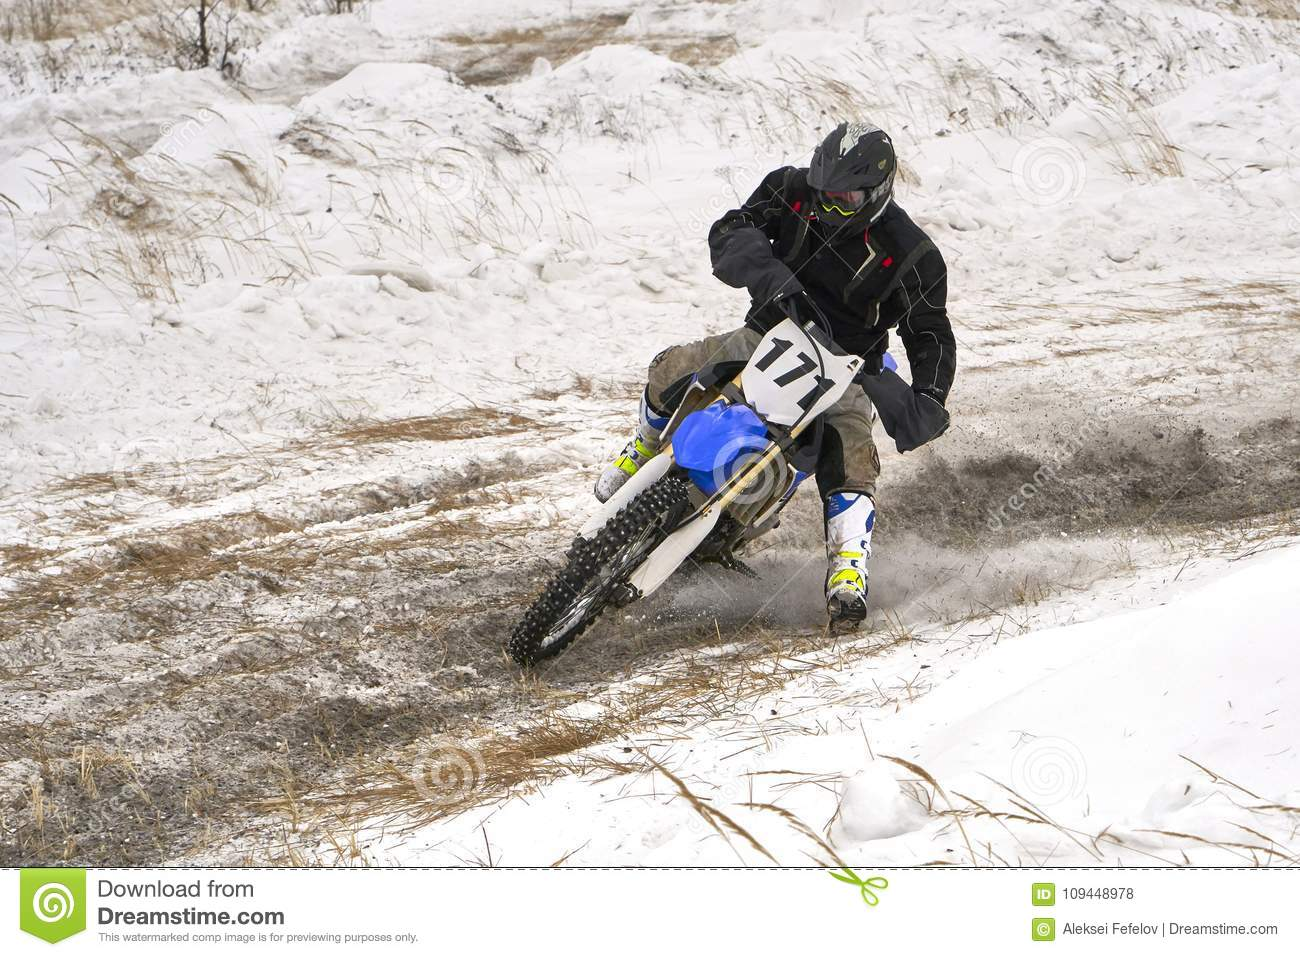 Sportsman racer man fulfills a fast ride on a motorcycle on the road extreme. The race track is very uneven.